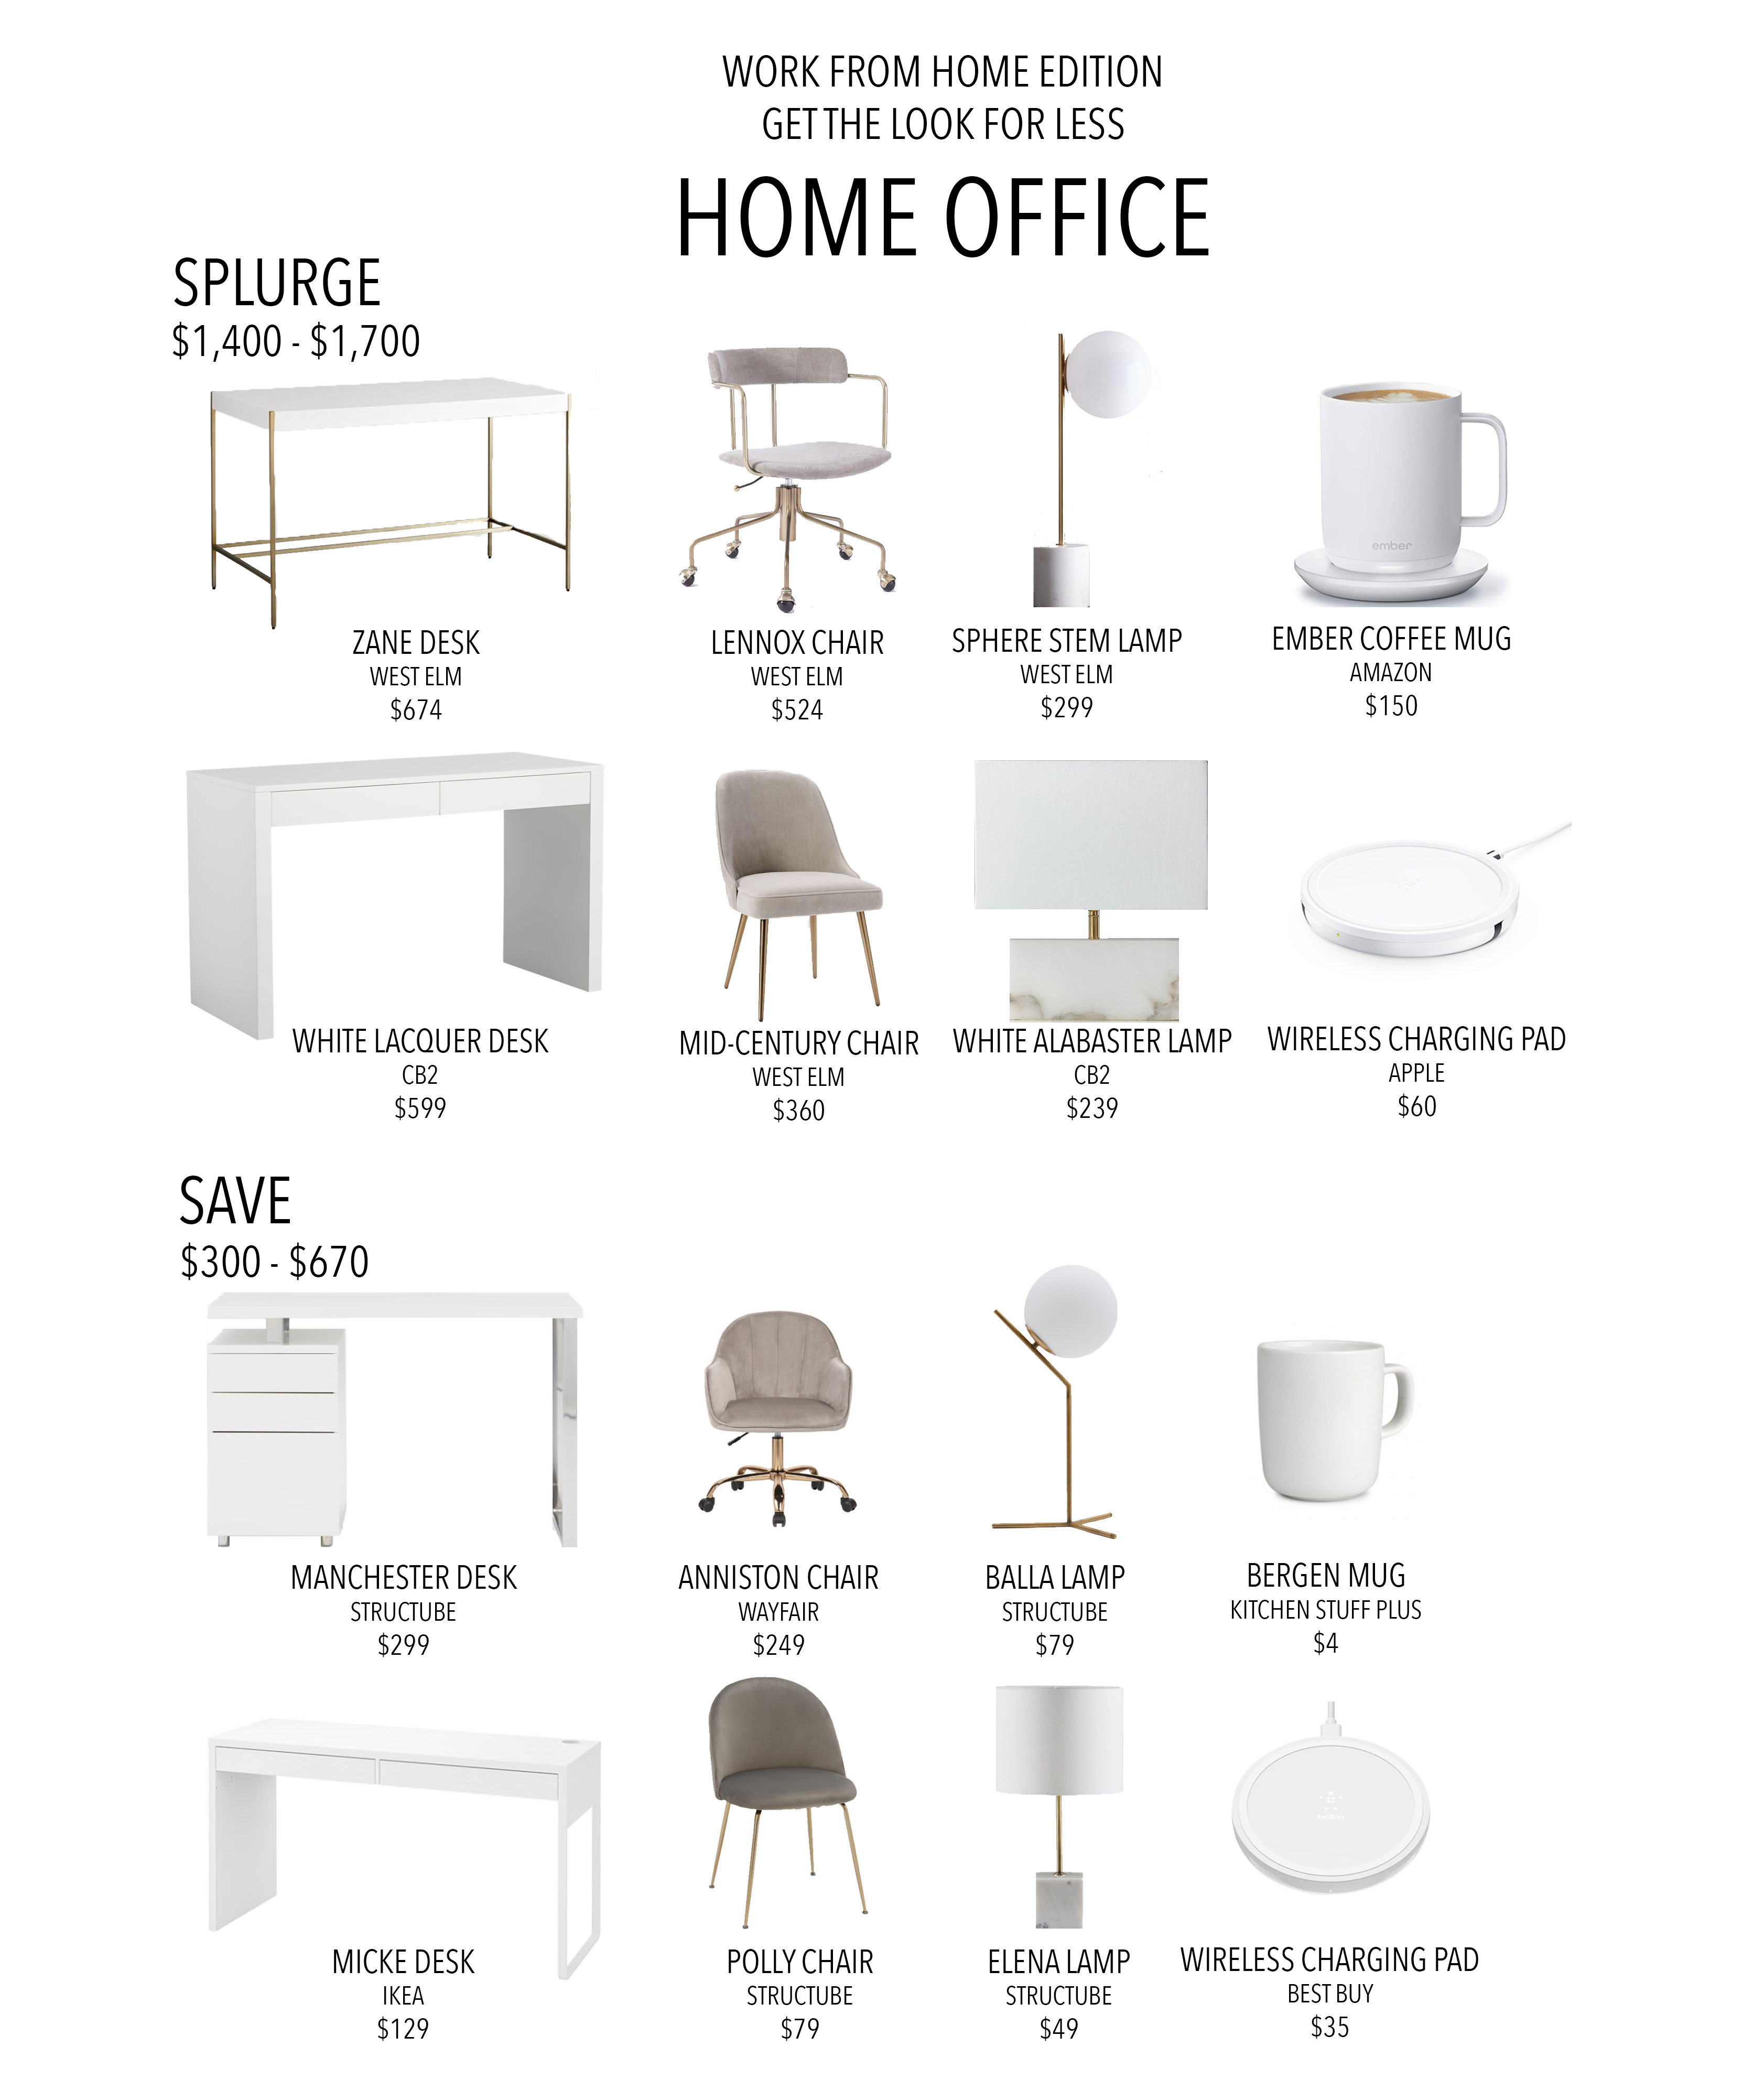 Work from Home 2020 Home Office Look for Less Save and Splurge WFH